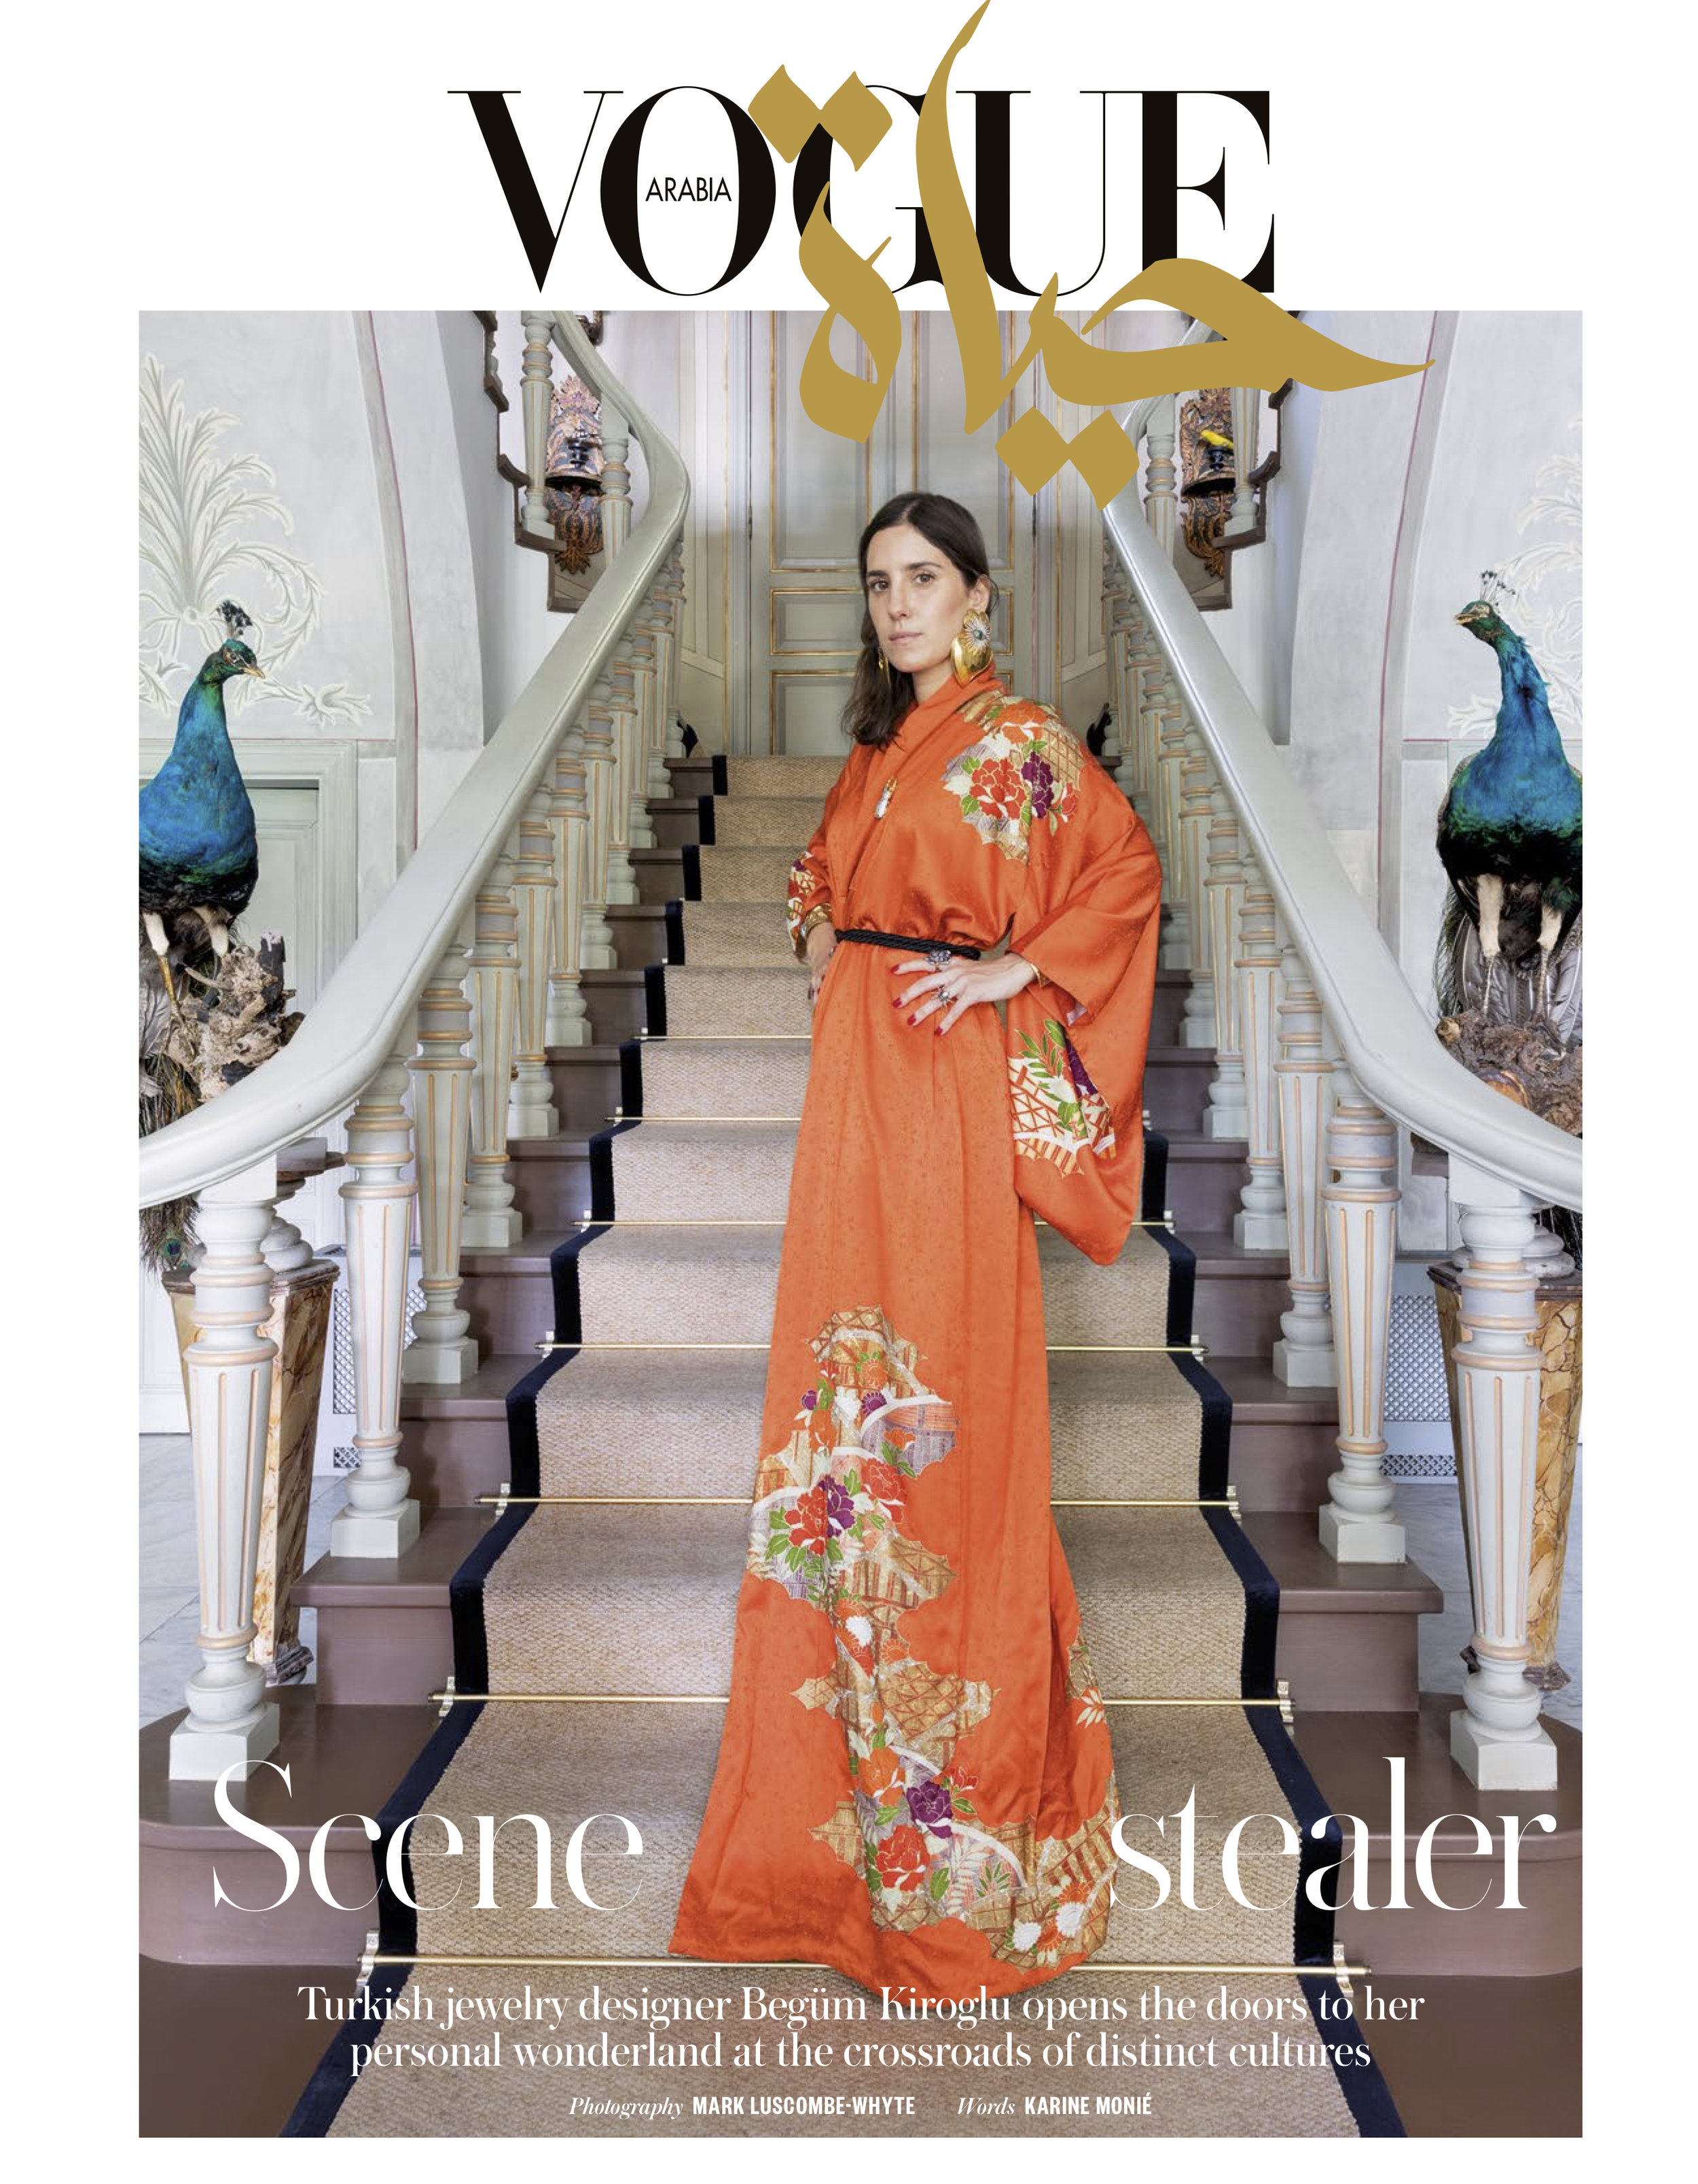 Begum Khan, Vogue Arabia.